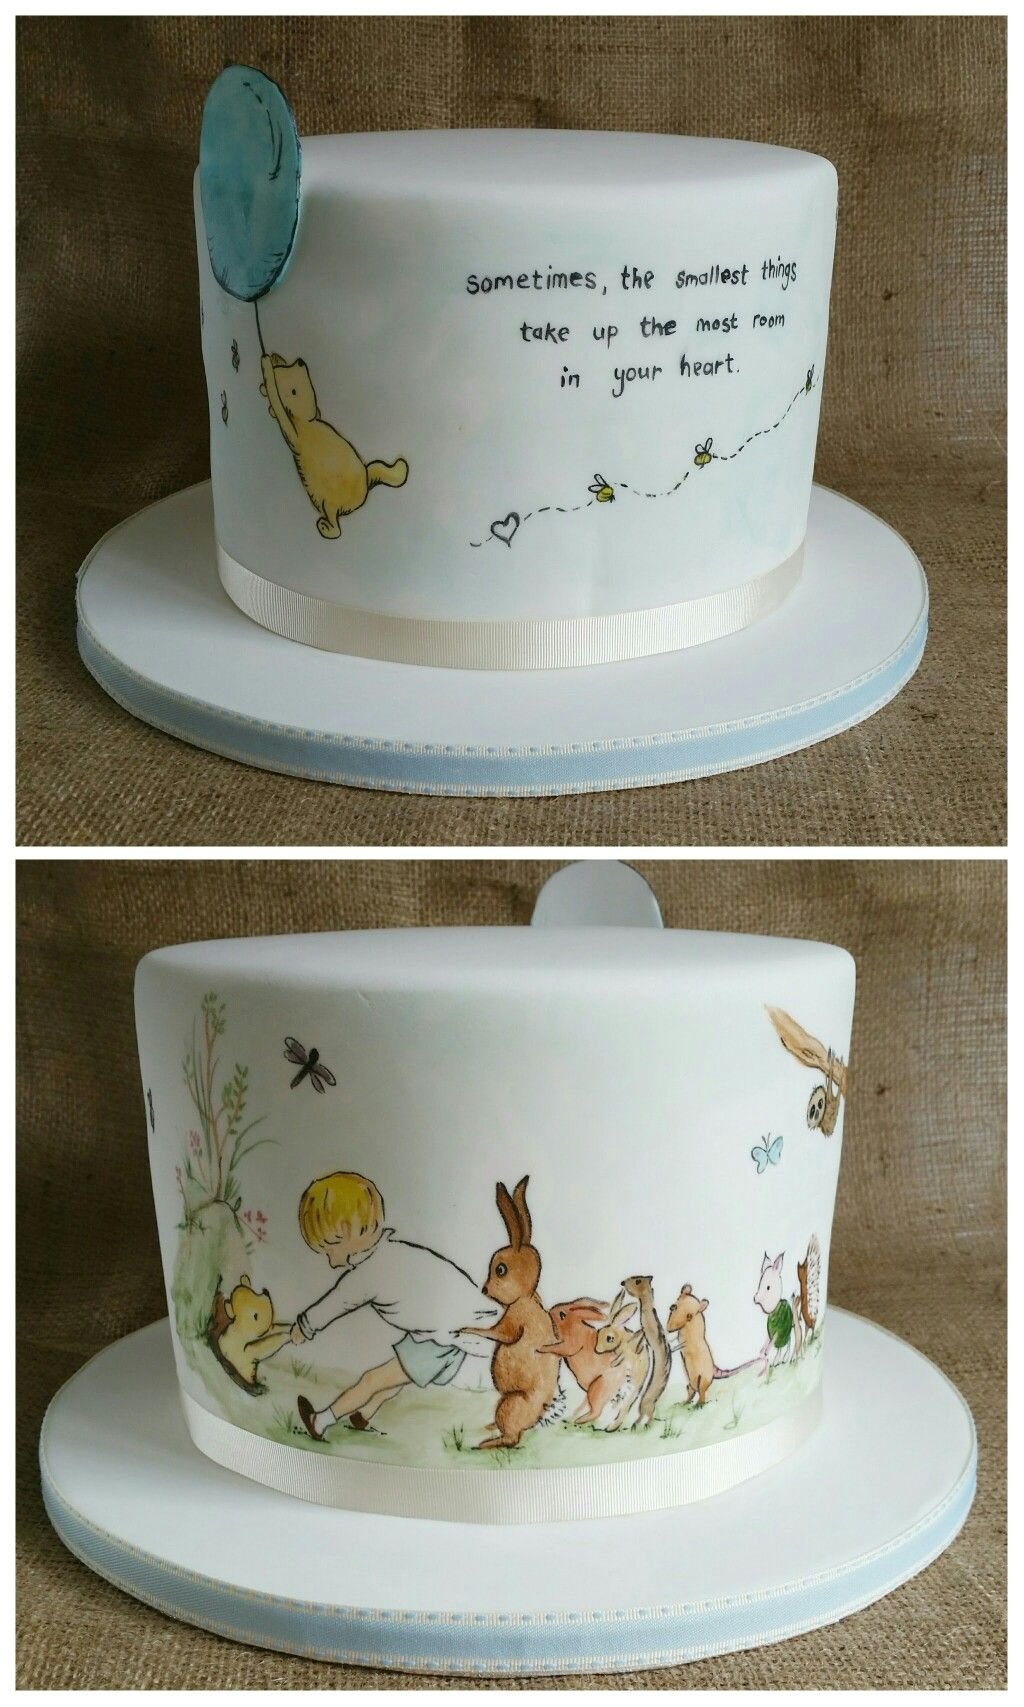 Elite Winnie The Pooh Baby Shower Cake. ☺ | Baby Shower Ideas pertaining to Winnie The Pooh Baby Shower Cakes